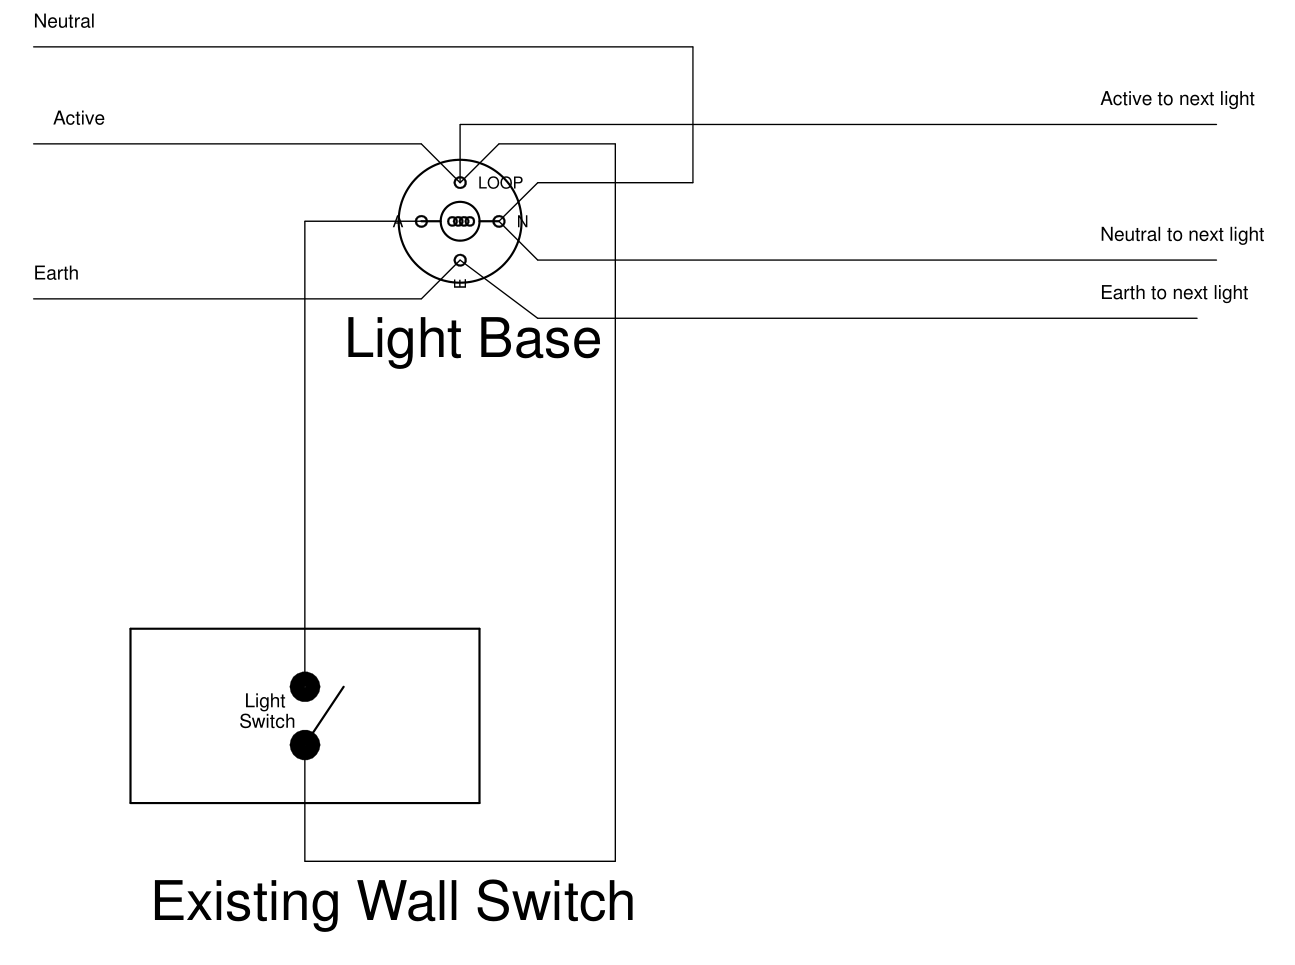 Retrofit House Lights With Wifi Keep Existing Switches Controlled Turns On Off The Light And One 2way Switch That Fan Active Neutral Earth Wires Are Often Looped From Base To For Each Is Down Wall Back